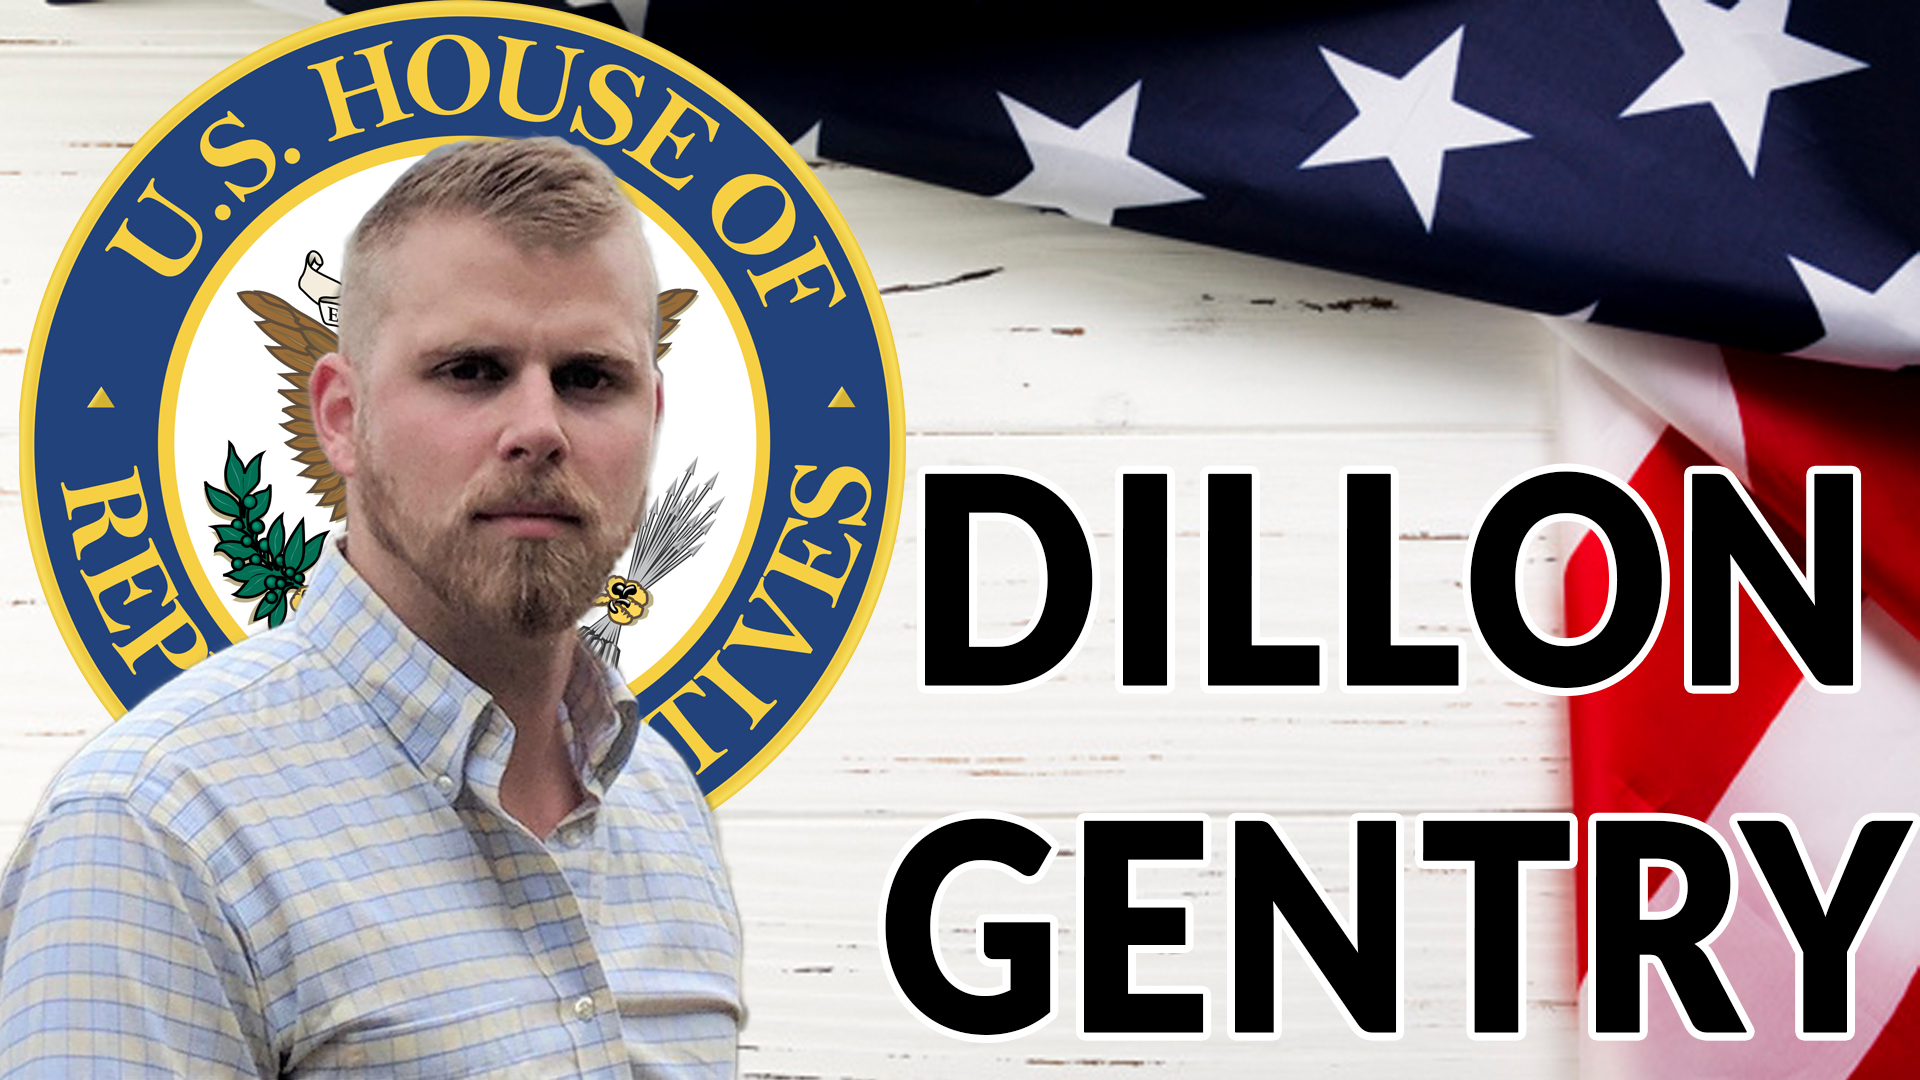 Dillon Gentry, US House Candidate